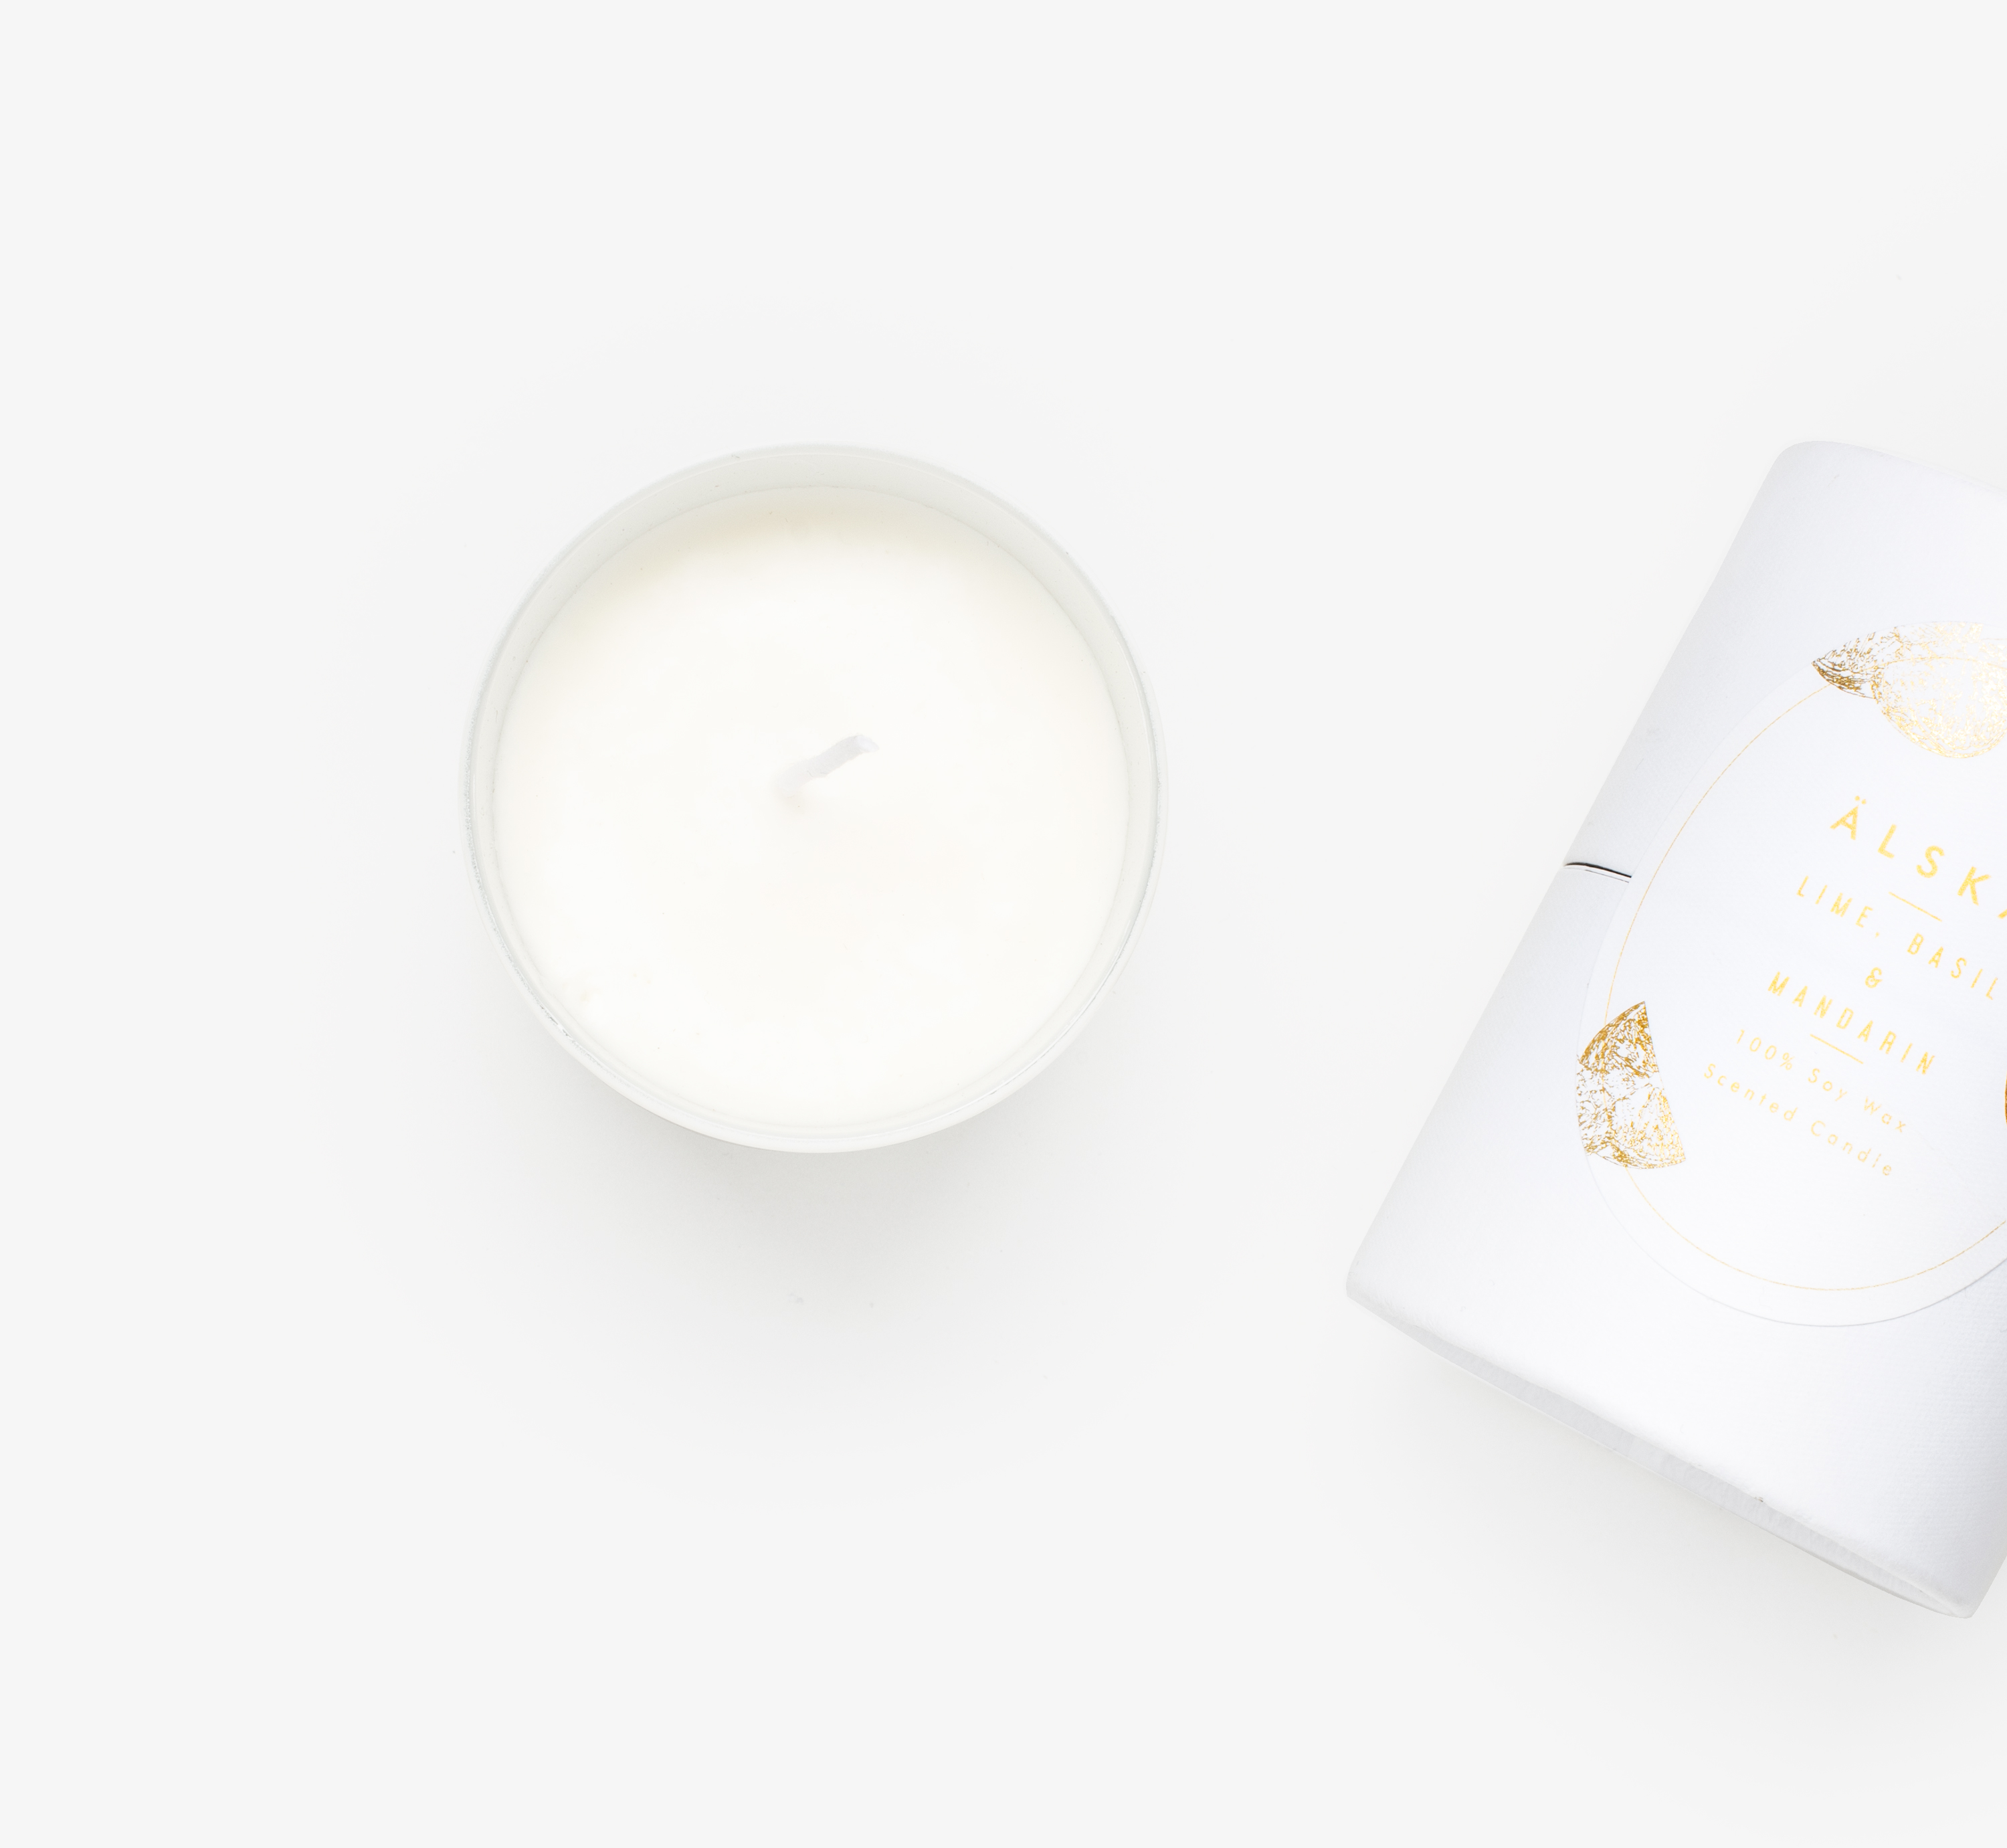 Lime basil and mandarin white Alska candle gift by Bookblock